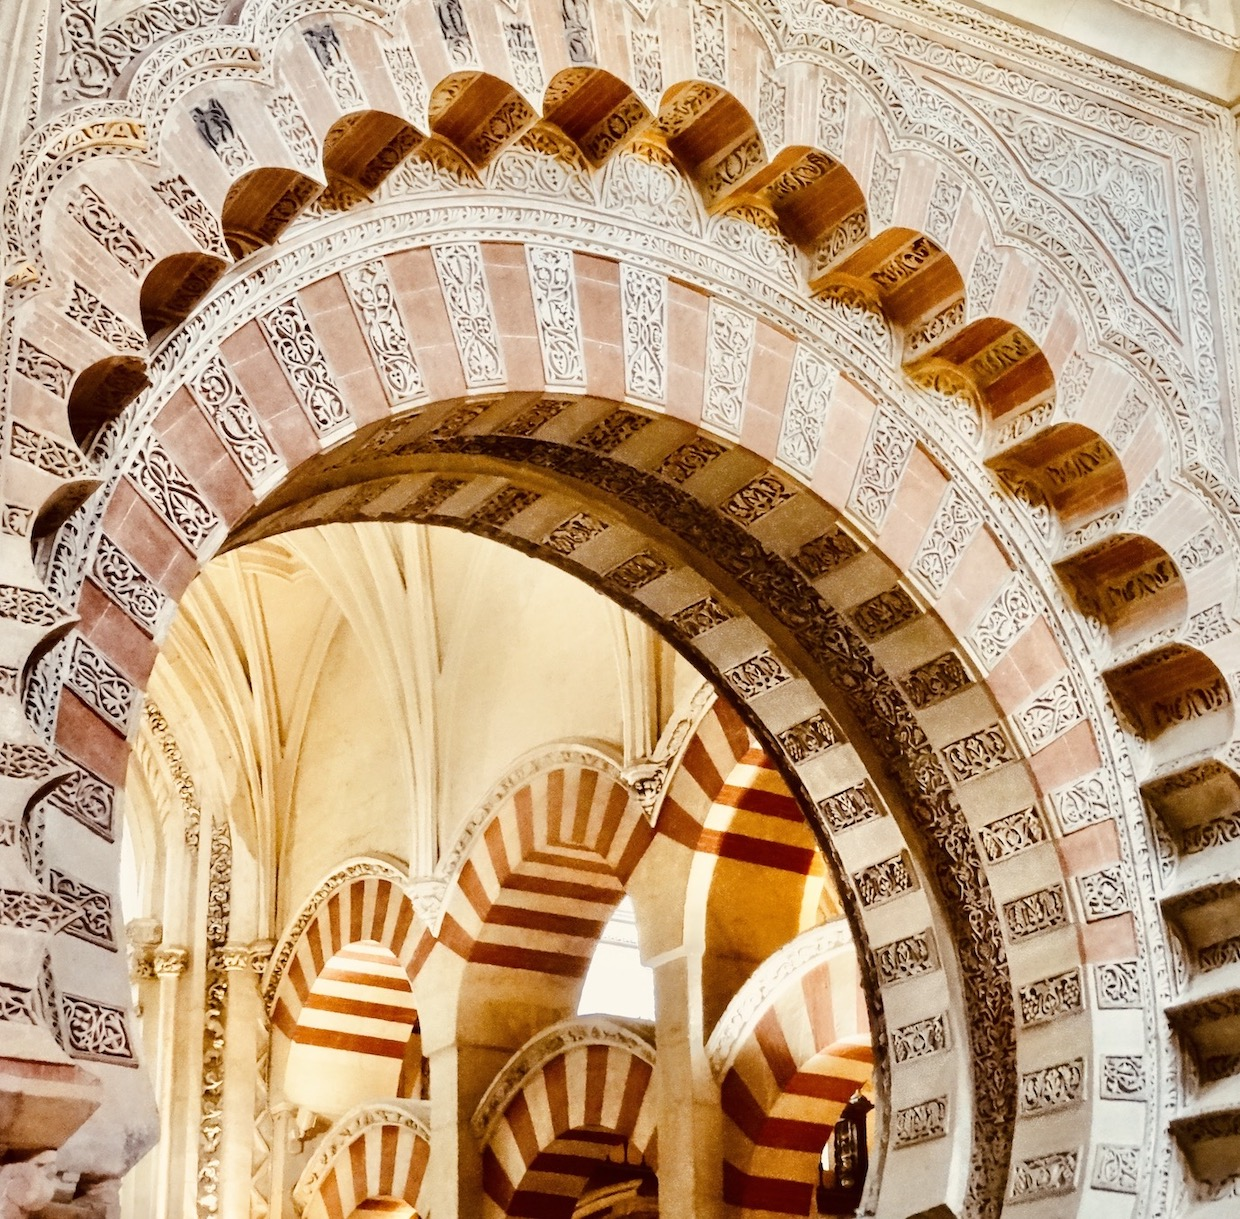 The Mezquita in Spain.